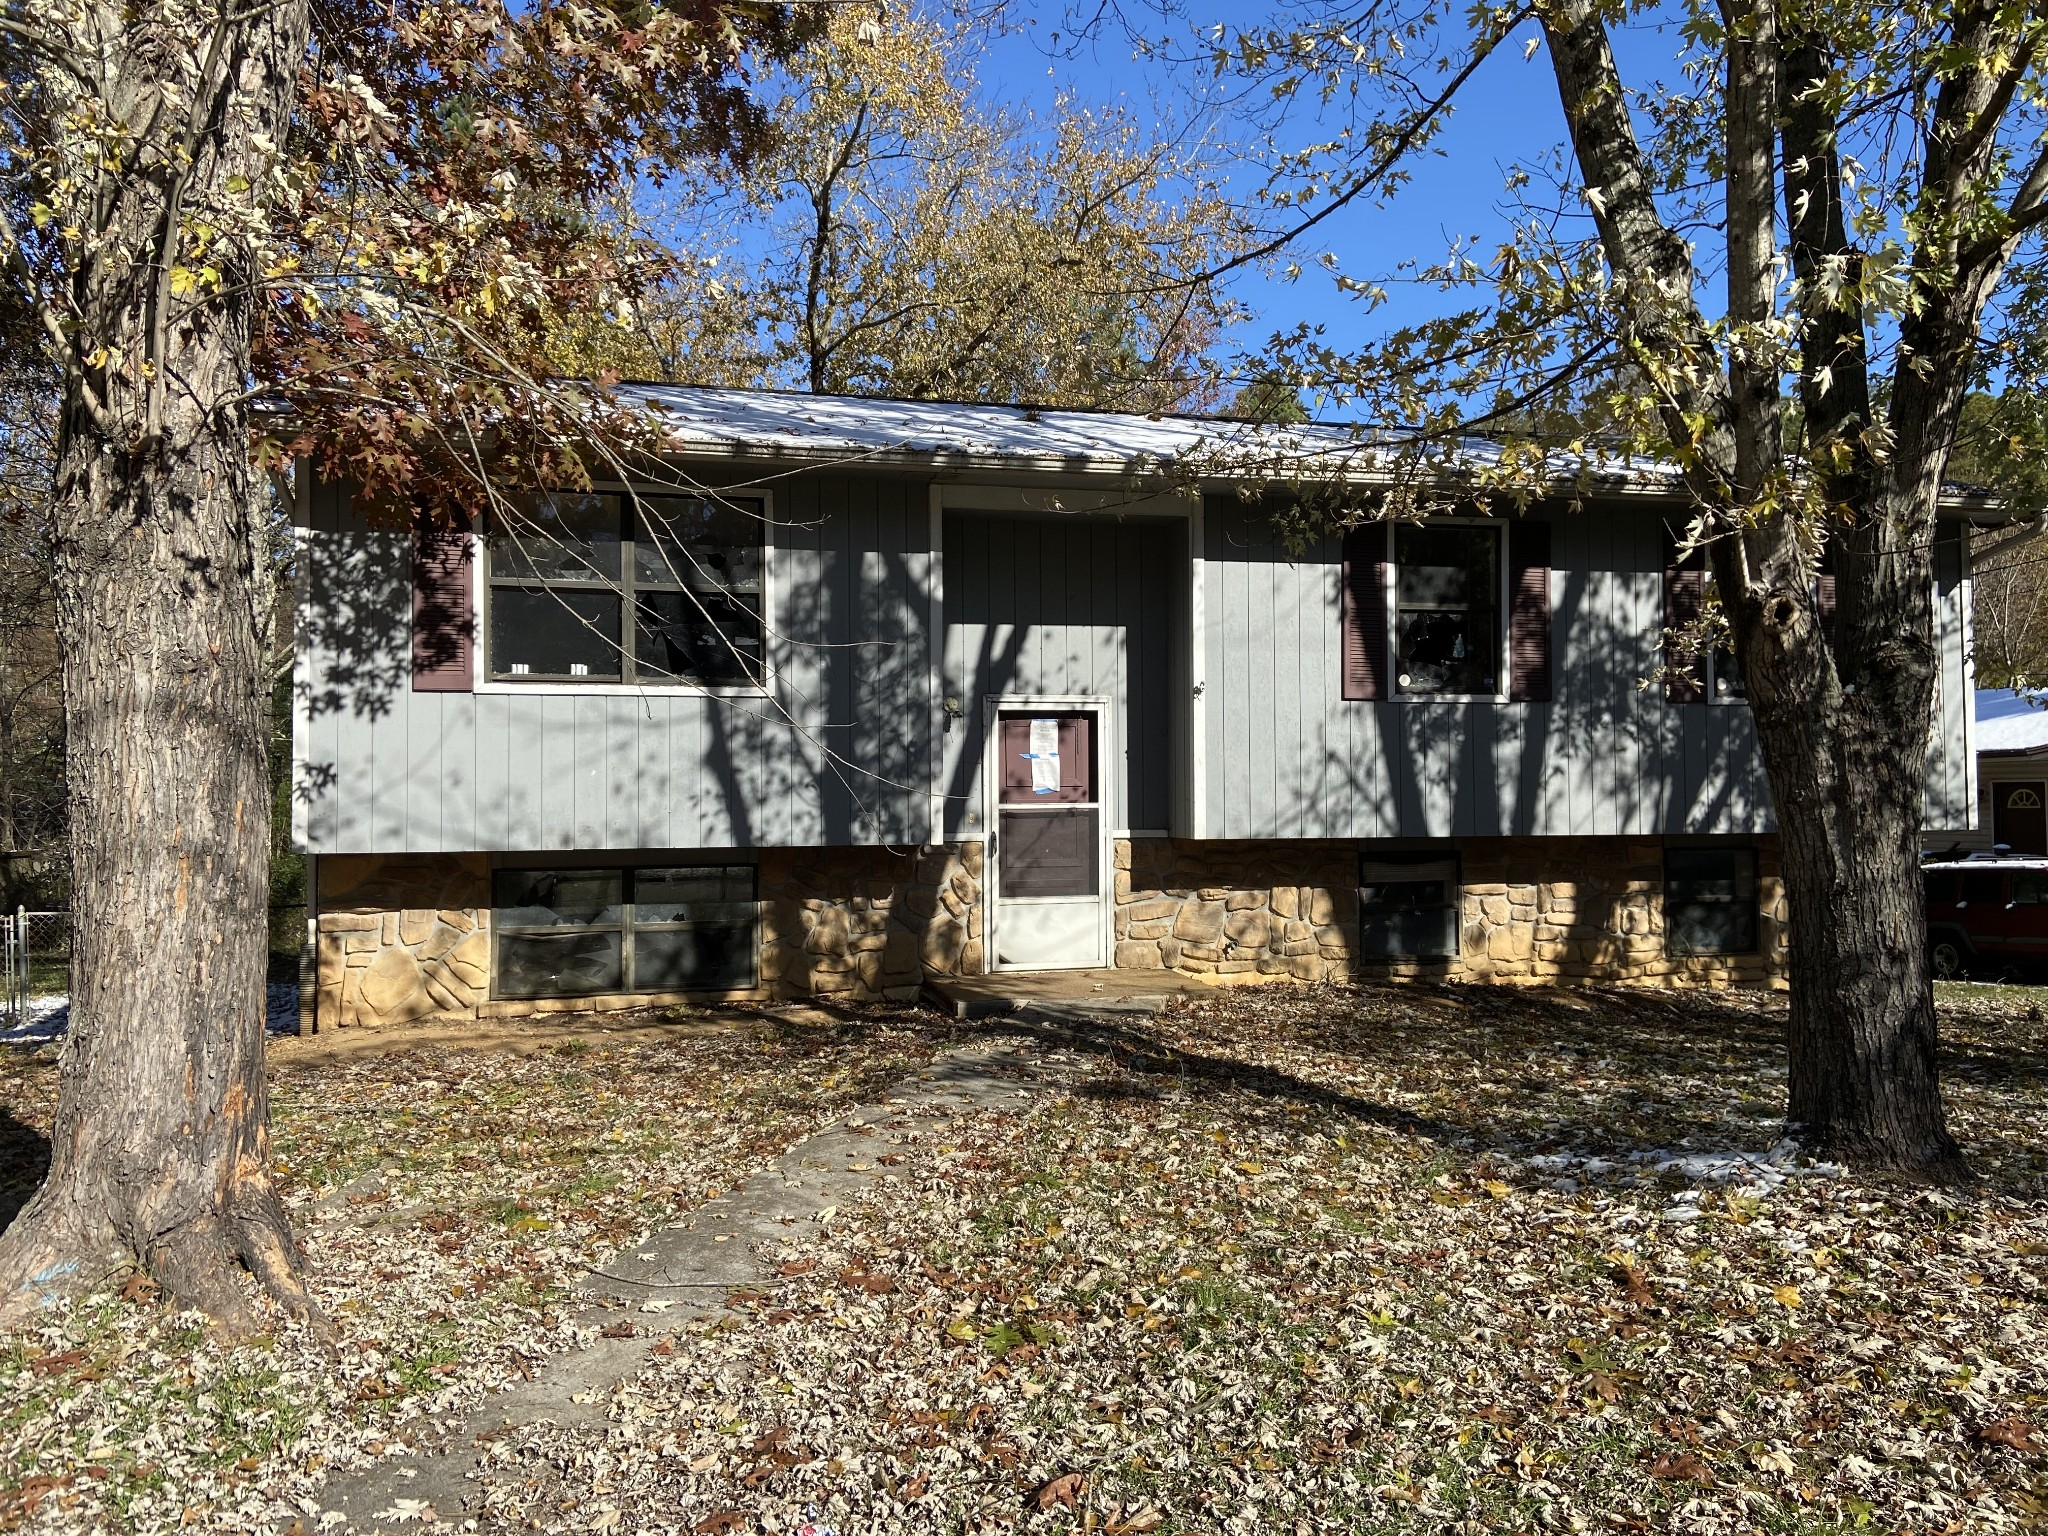 2549 Chukar Road, 1637FB62-6709-411D-8477-1925DD97, TN 37923 - 1637FB62-6709-411D-8477-1925DD97, TN real estate listing